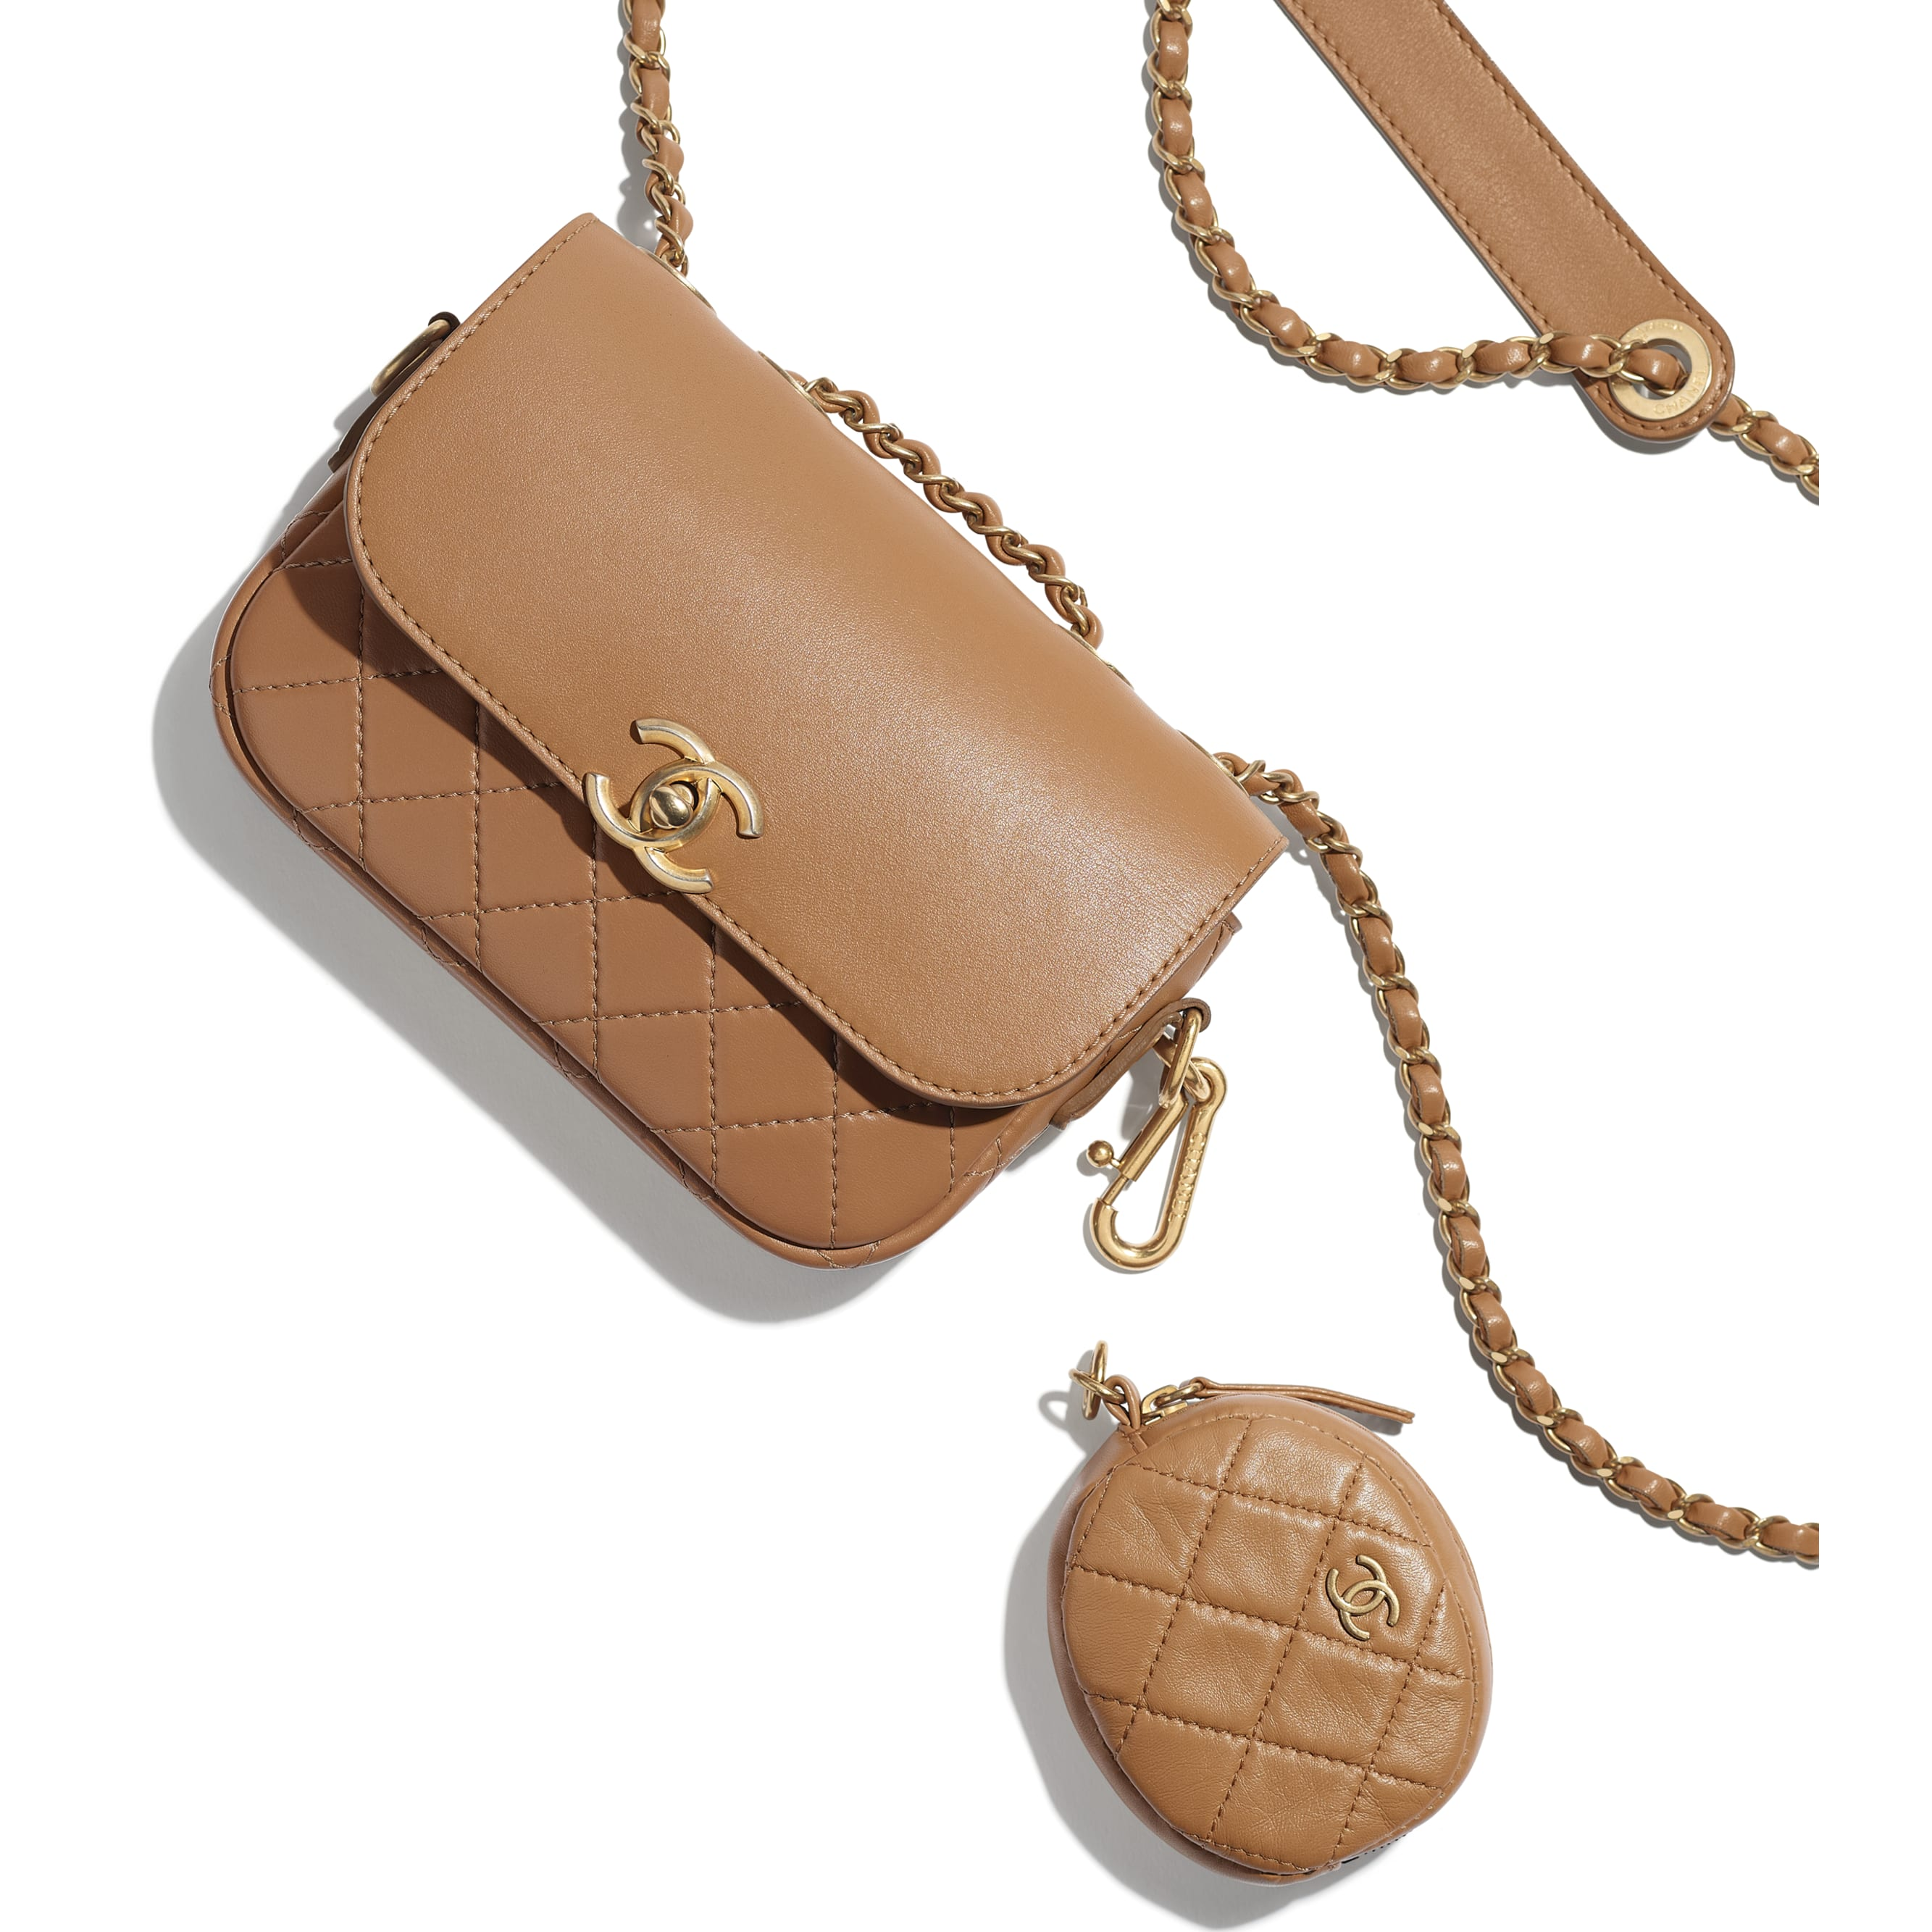 Flap Bag & Coin Purse - Beige - Calfskin & Gold-Tone Metal - Extra view - see standard sized version